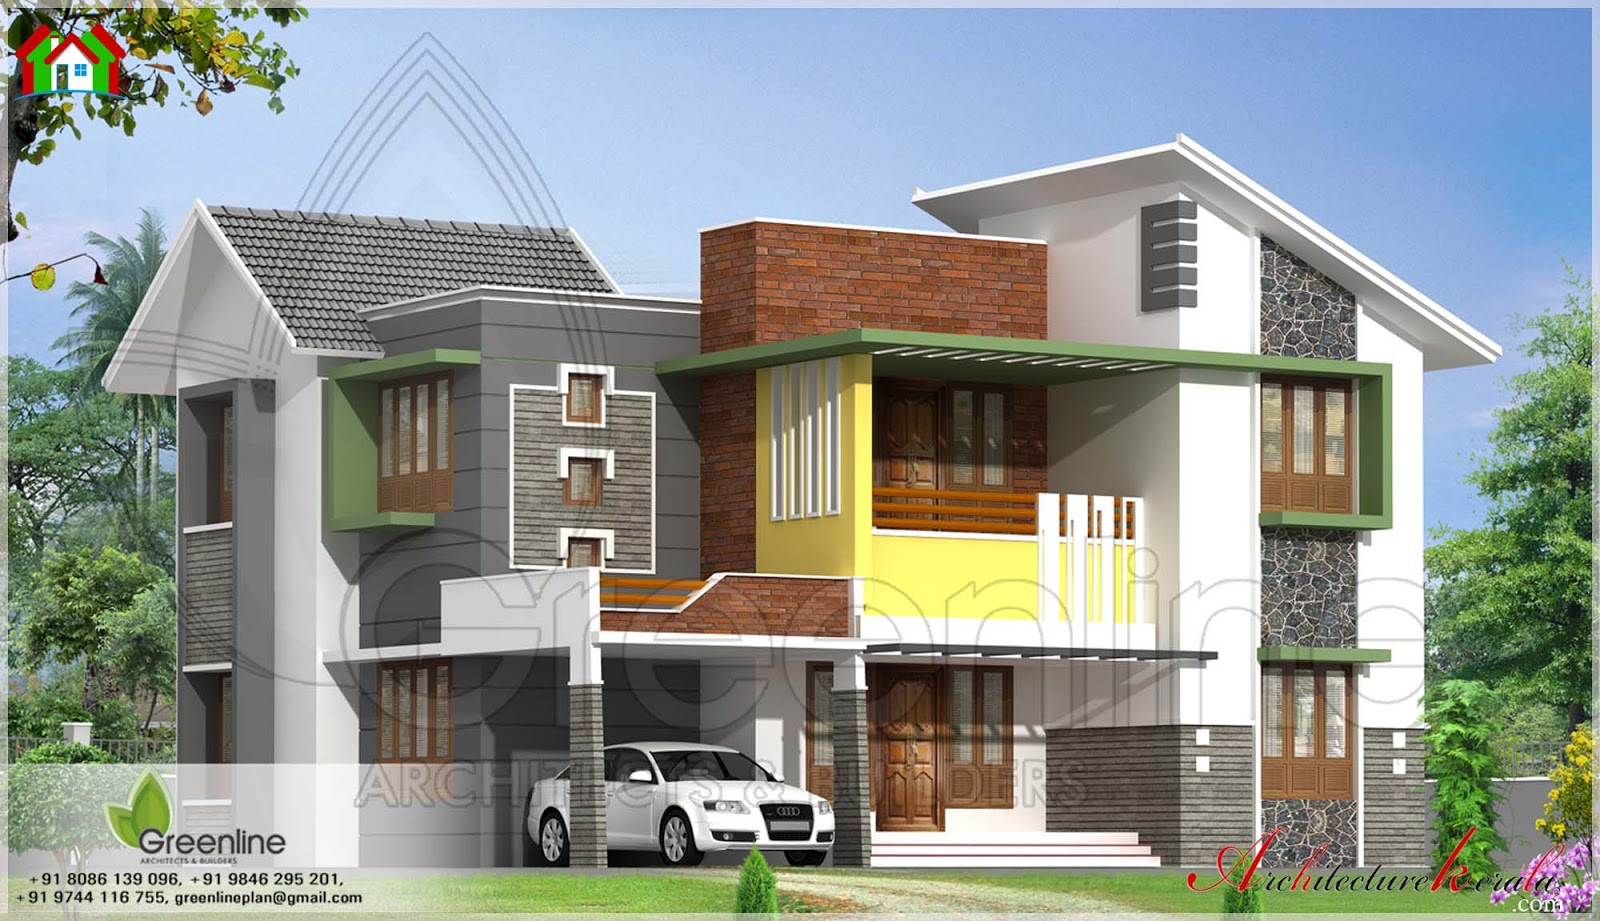 Modern style house elevation architecture kerala for Home architecture design kerala